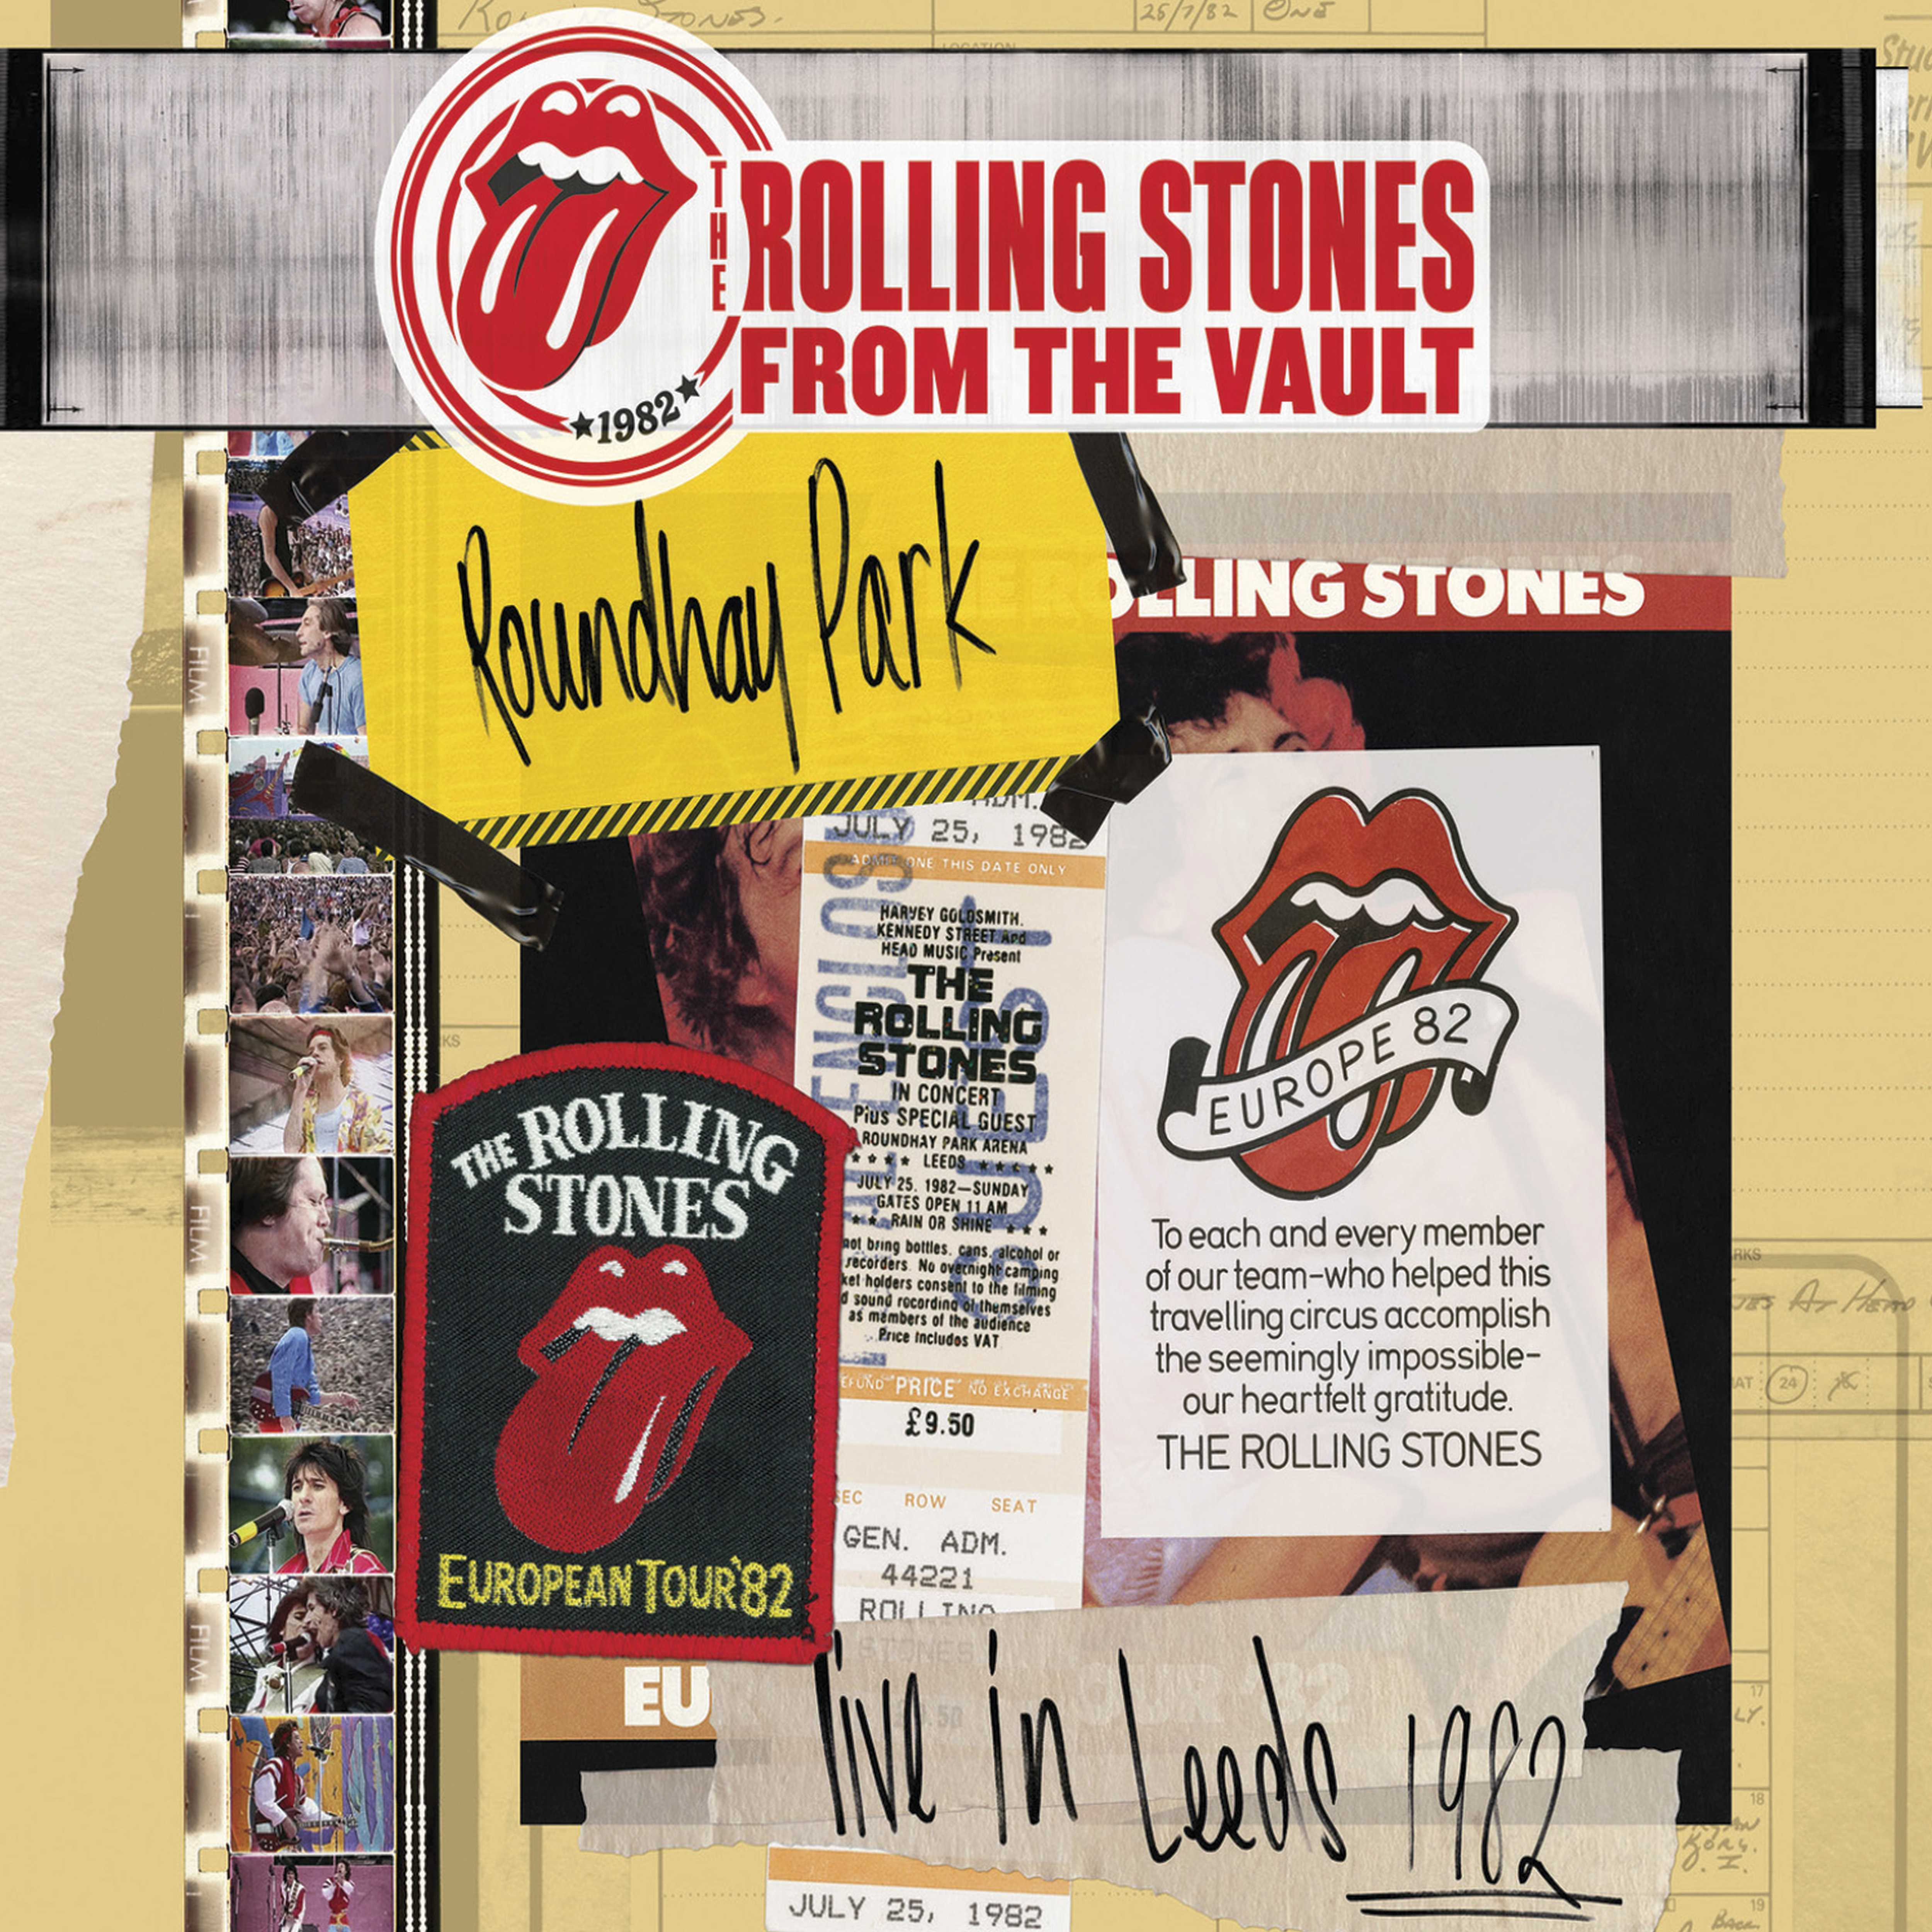 The Rolling Stones: From the Vault - Live in Leeds